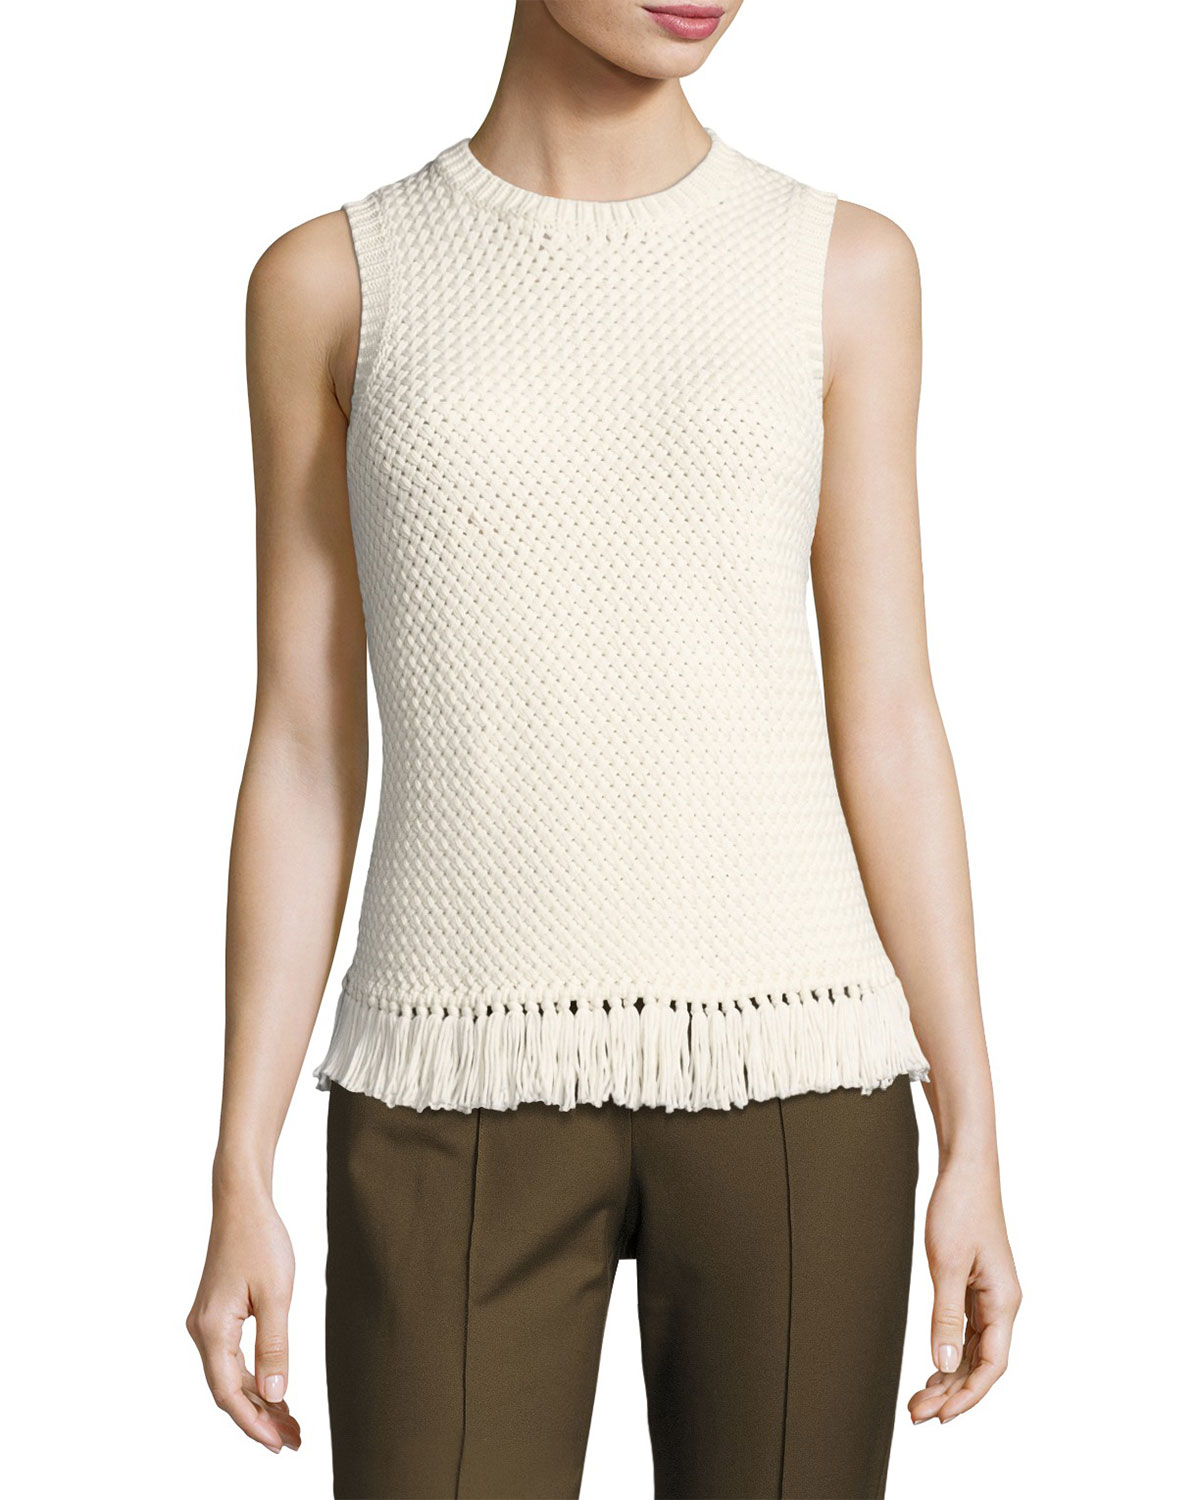 Meenara Crosshatched Knit Tank Sweater, White